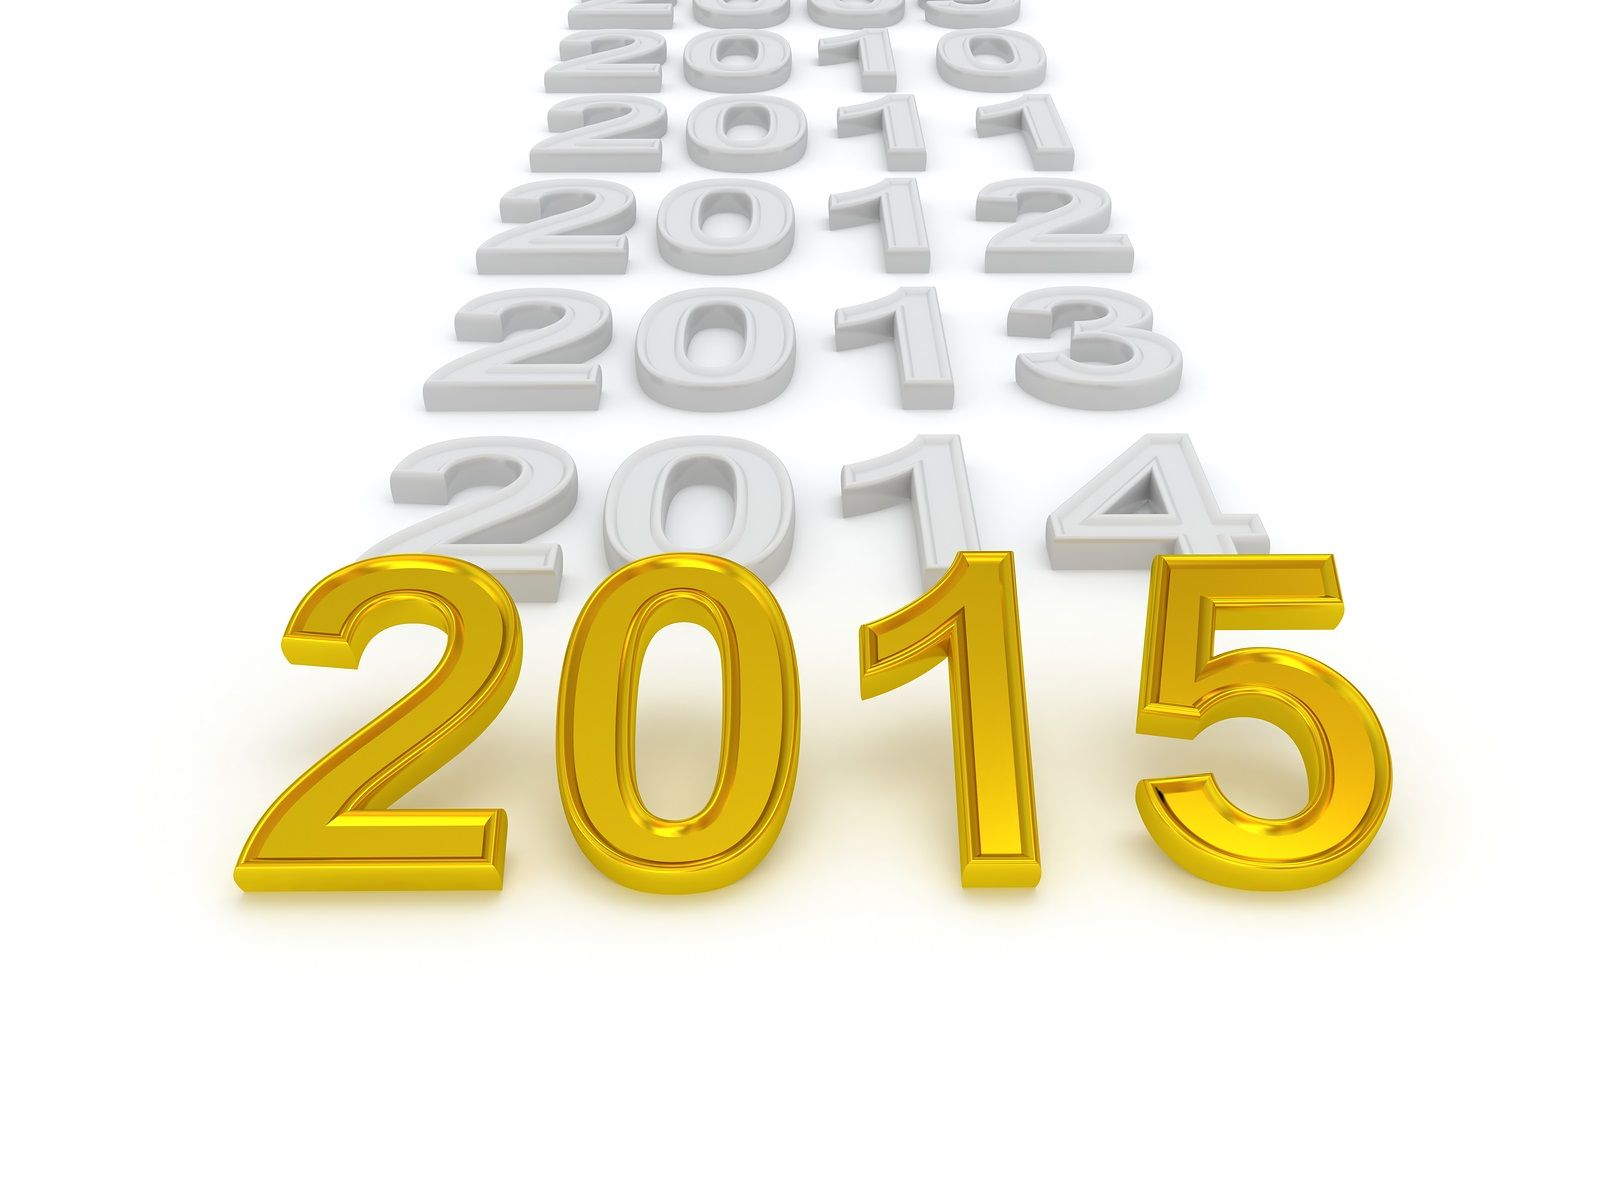 Happy new year 2015 hd wallpapers new year pinterest hd happy new year 2015 greetings whatsapp images photos 2015 kristyandbryce Choice Image